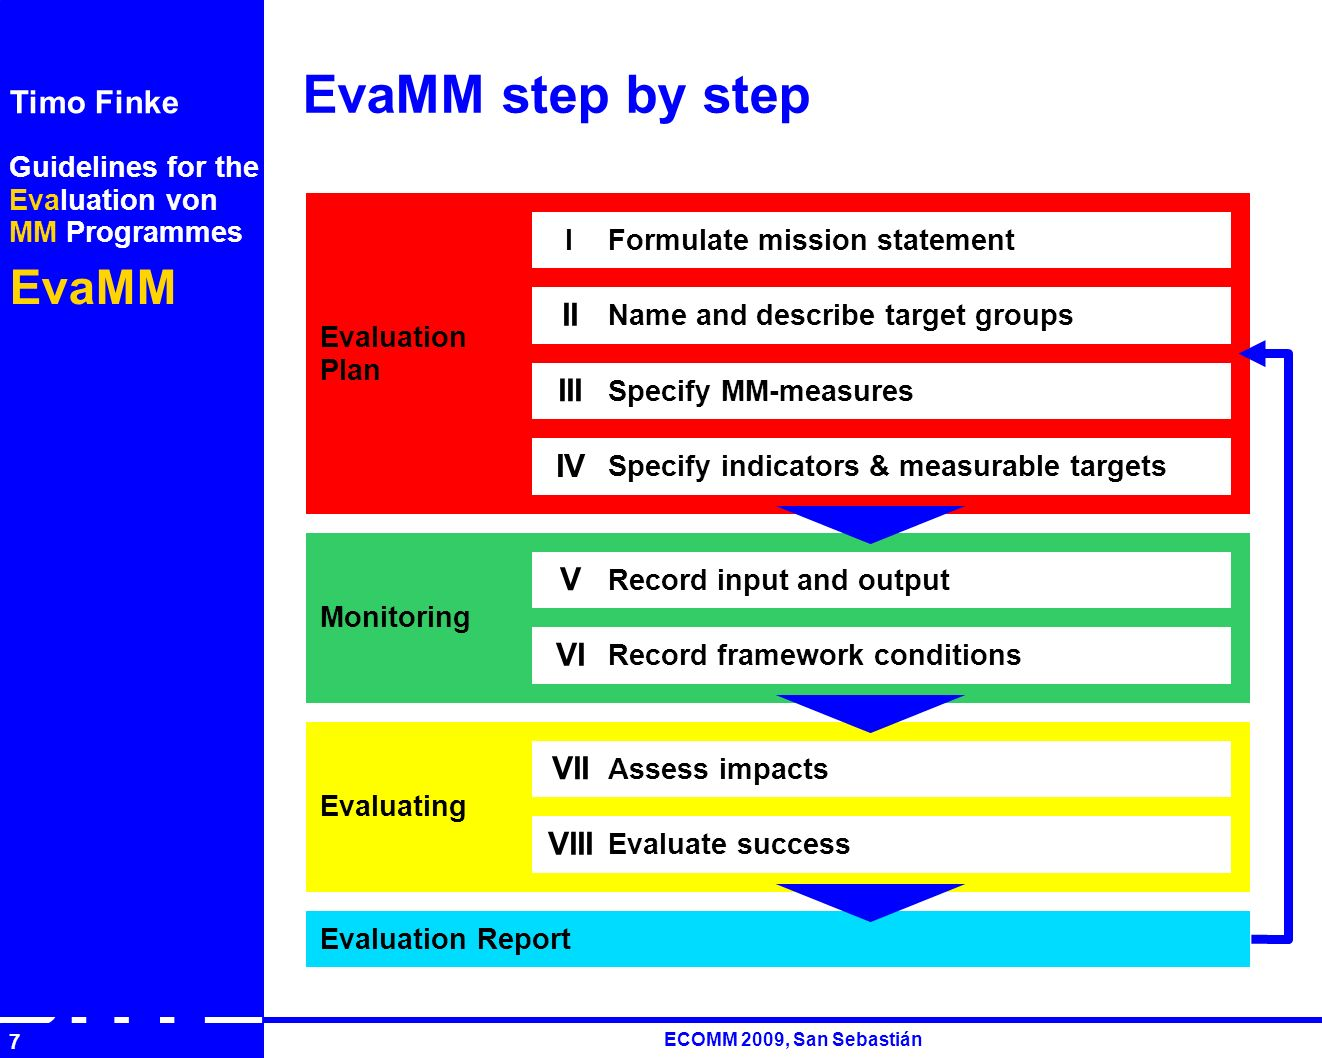 Guidelines for the Evaluation von MM Programmes EvaMM Timo Finke RUTH ECOMM 2009, San Sebastián 7 EvaMM step by step Monitoring Evaluating Evaluation Plan Name and describe target groups Specify indicators & measurable targets Record input and output Record framework conditions Assess impacts Evaluate success Specify MM-measures Formulate mission statementI V VI VII VIII II III IV Evaluation Report